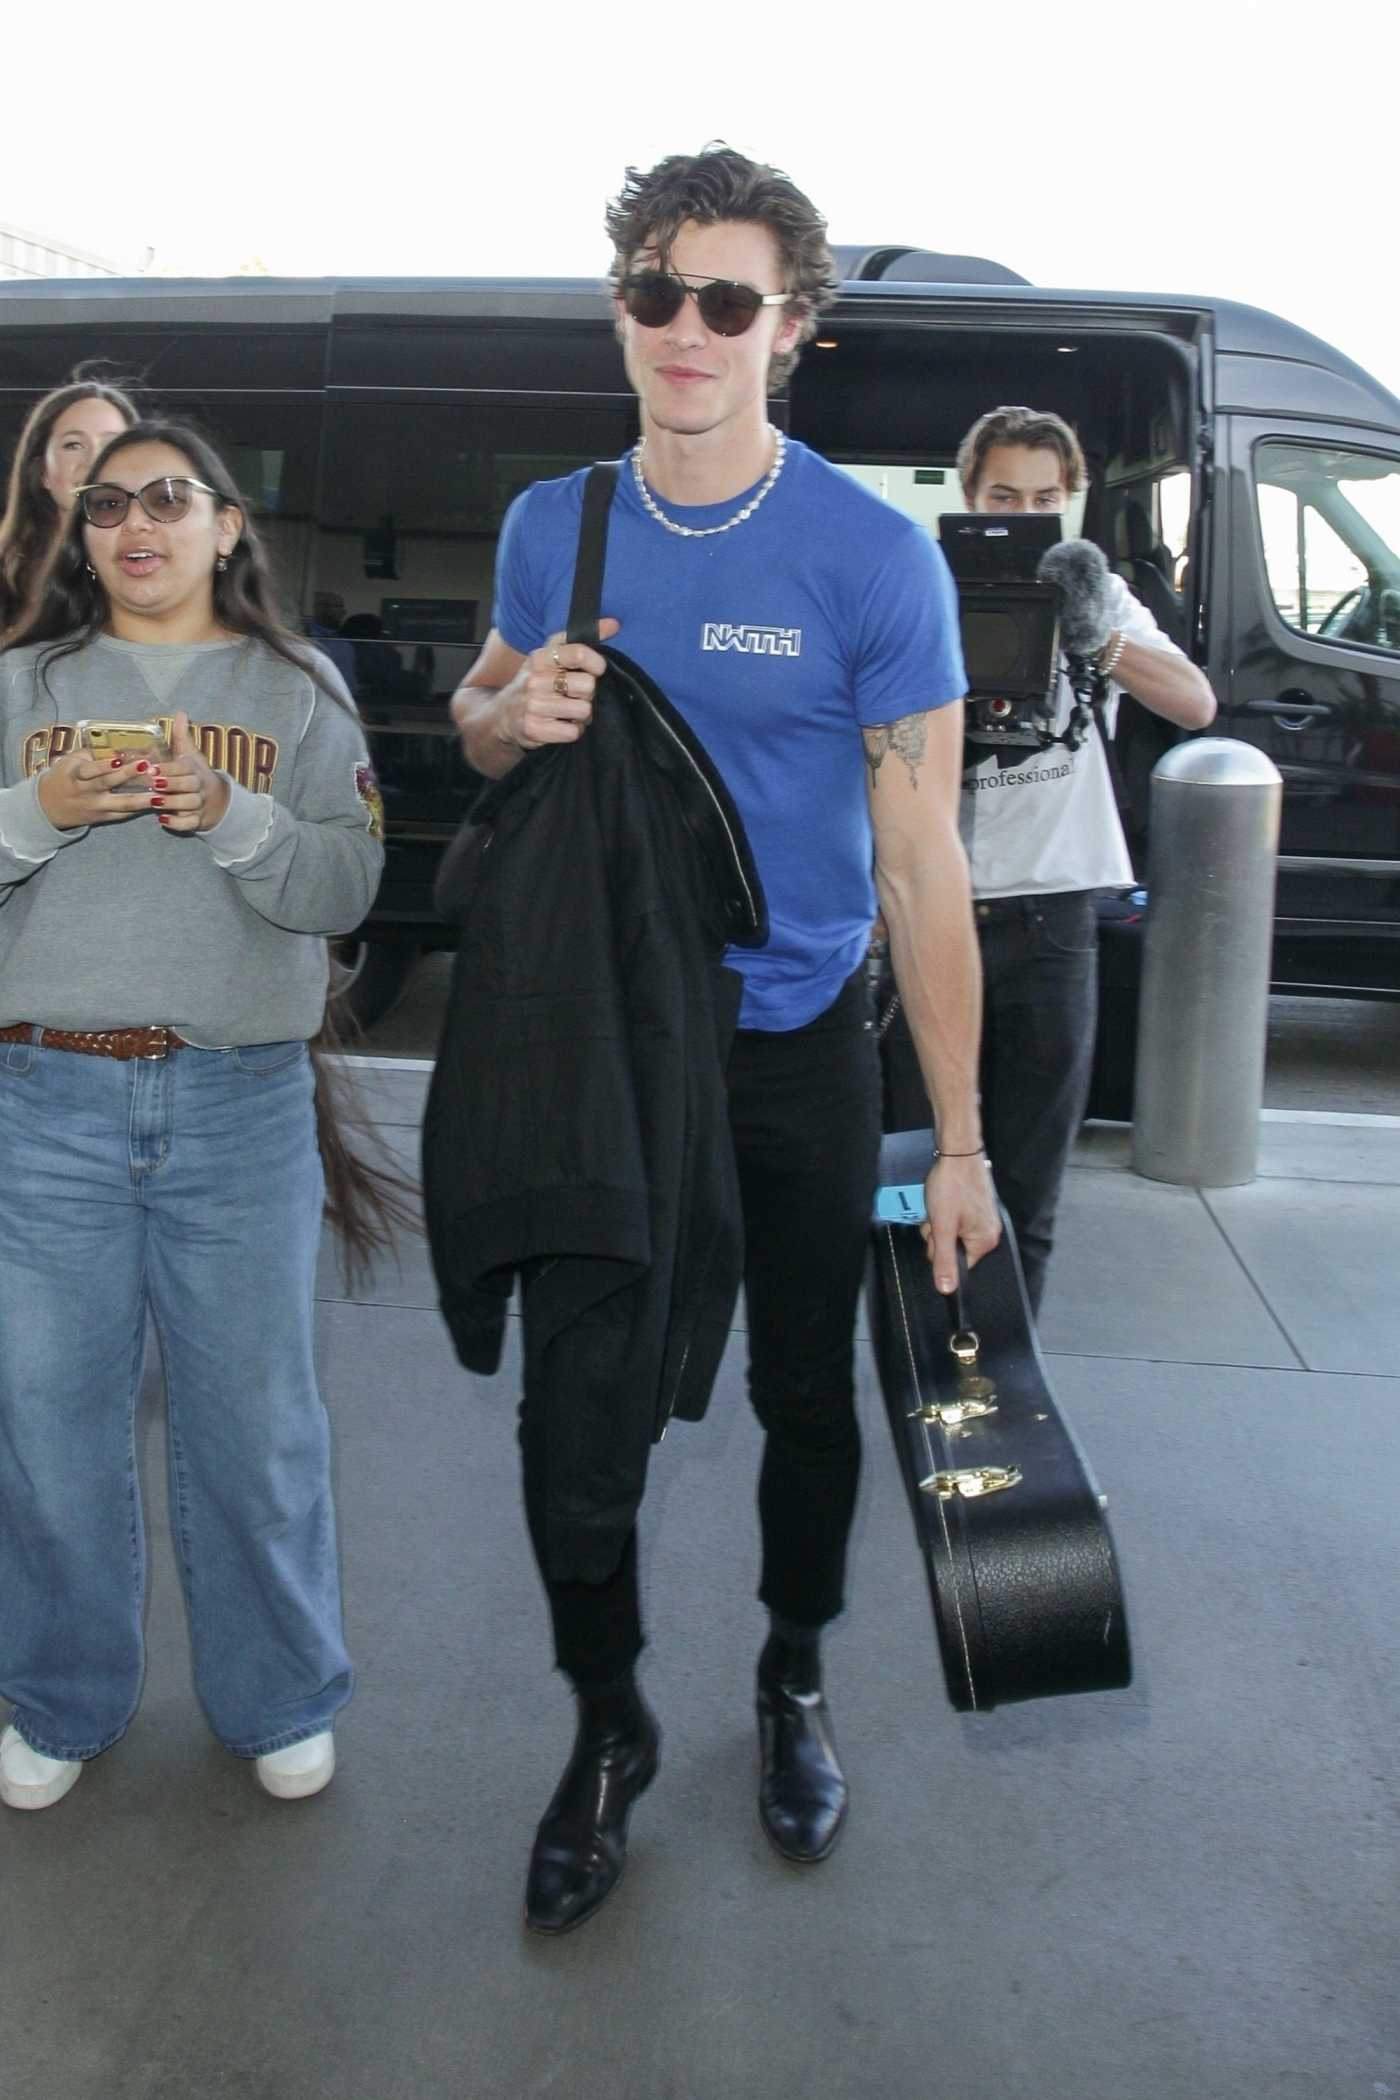 Shawn Mendes in a Blue Tee Arrives at LAX Airport in Los Angeles 11/26/2019